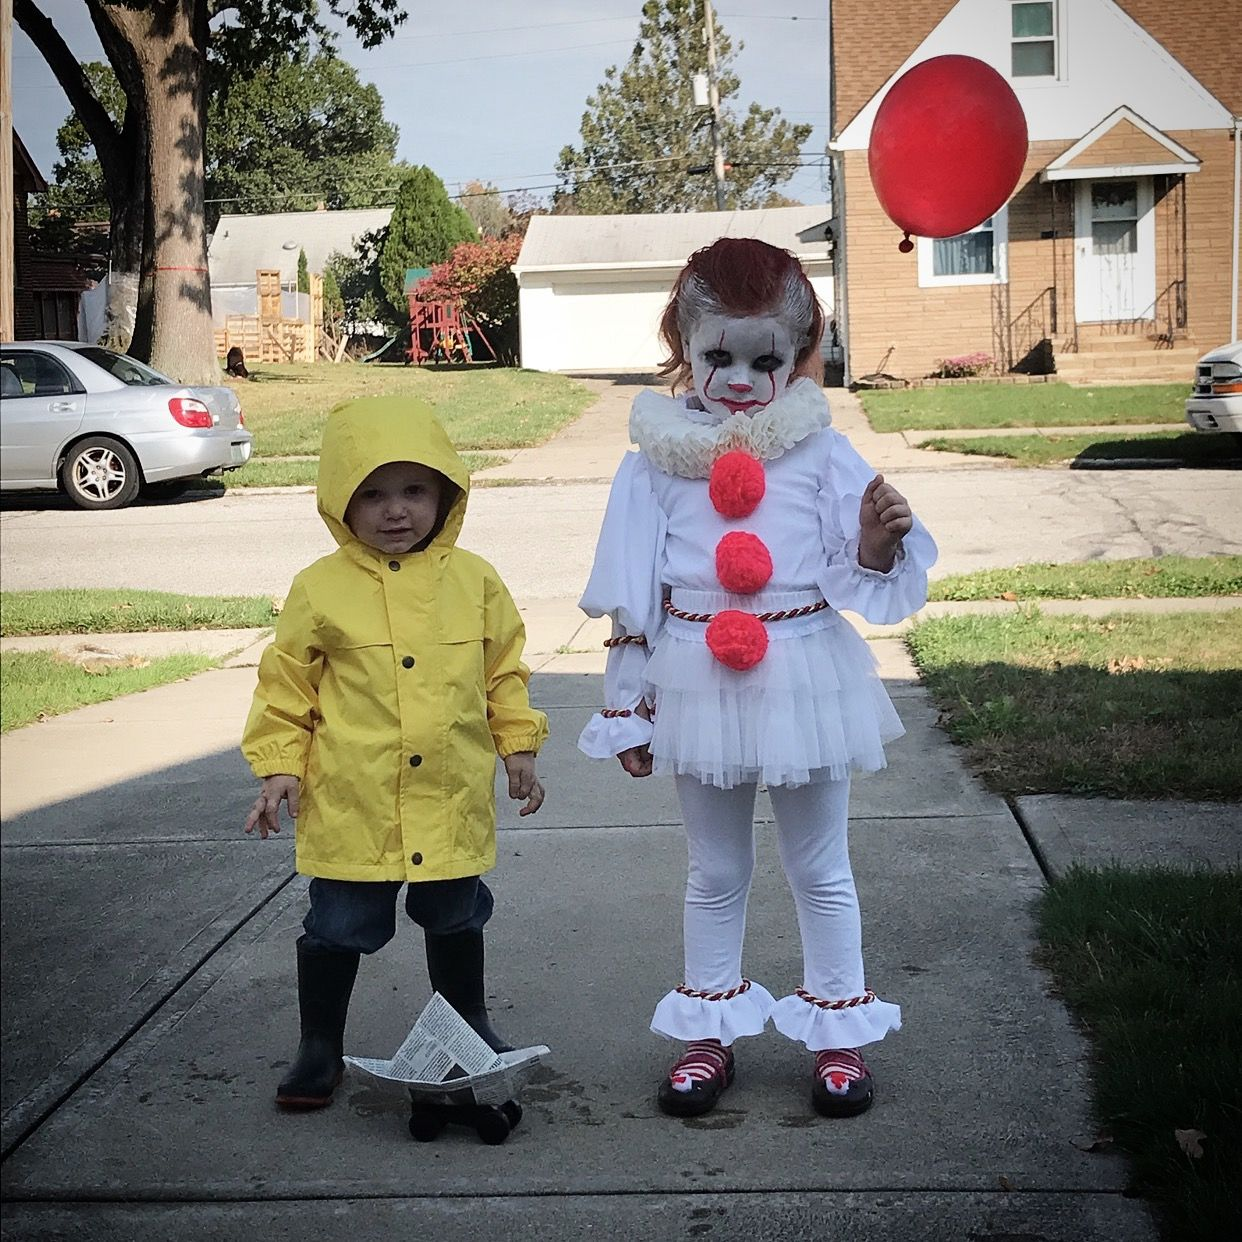 Children\u0027s IT Halloween costume. Georgie and Pennywise the